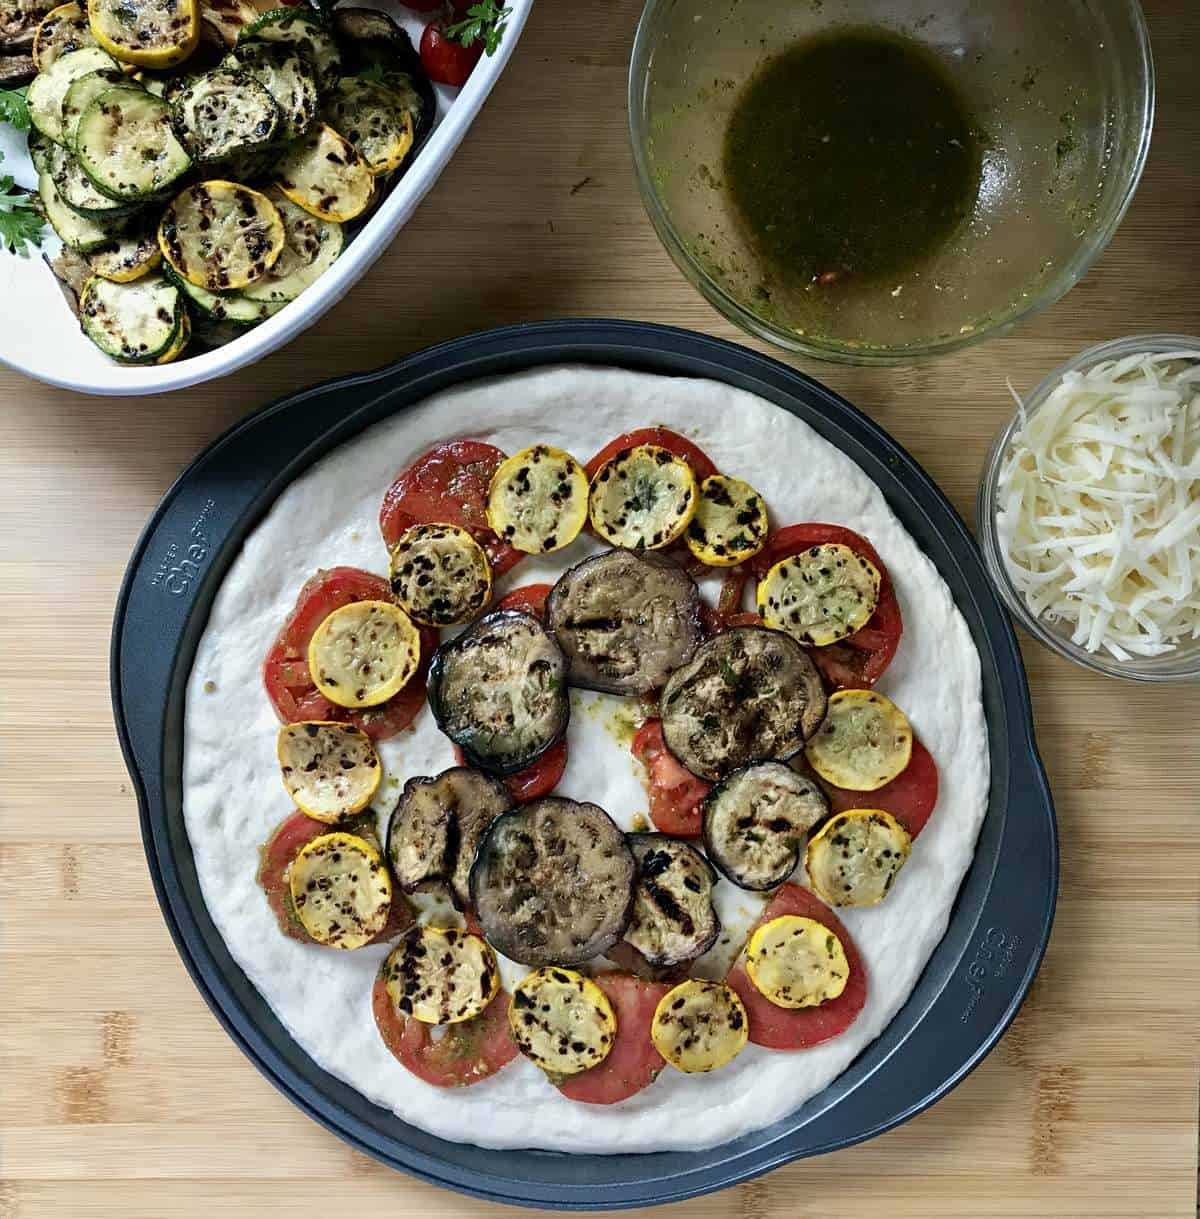 Grilled vegetables placed over the marinated tomatoes create the second layer of this vegetarian pizza.